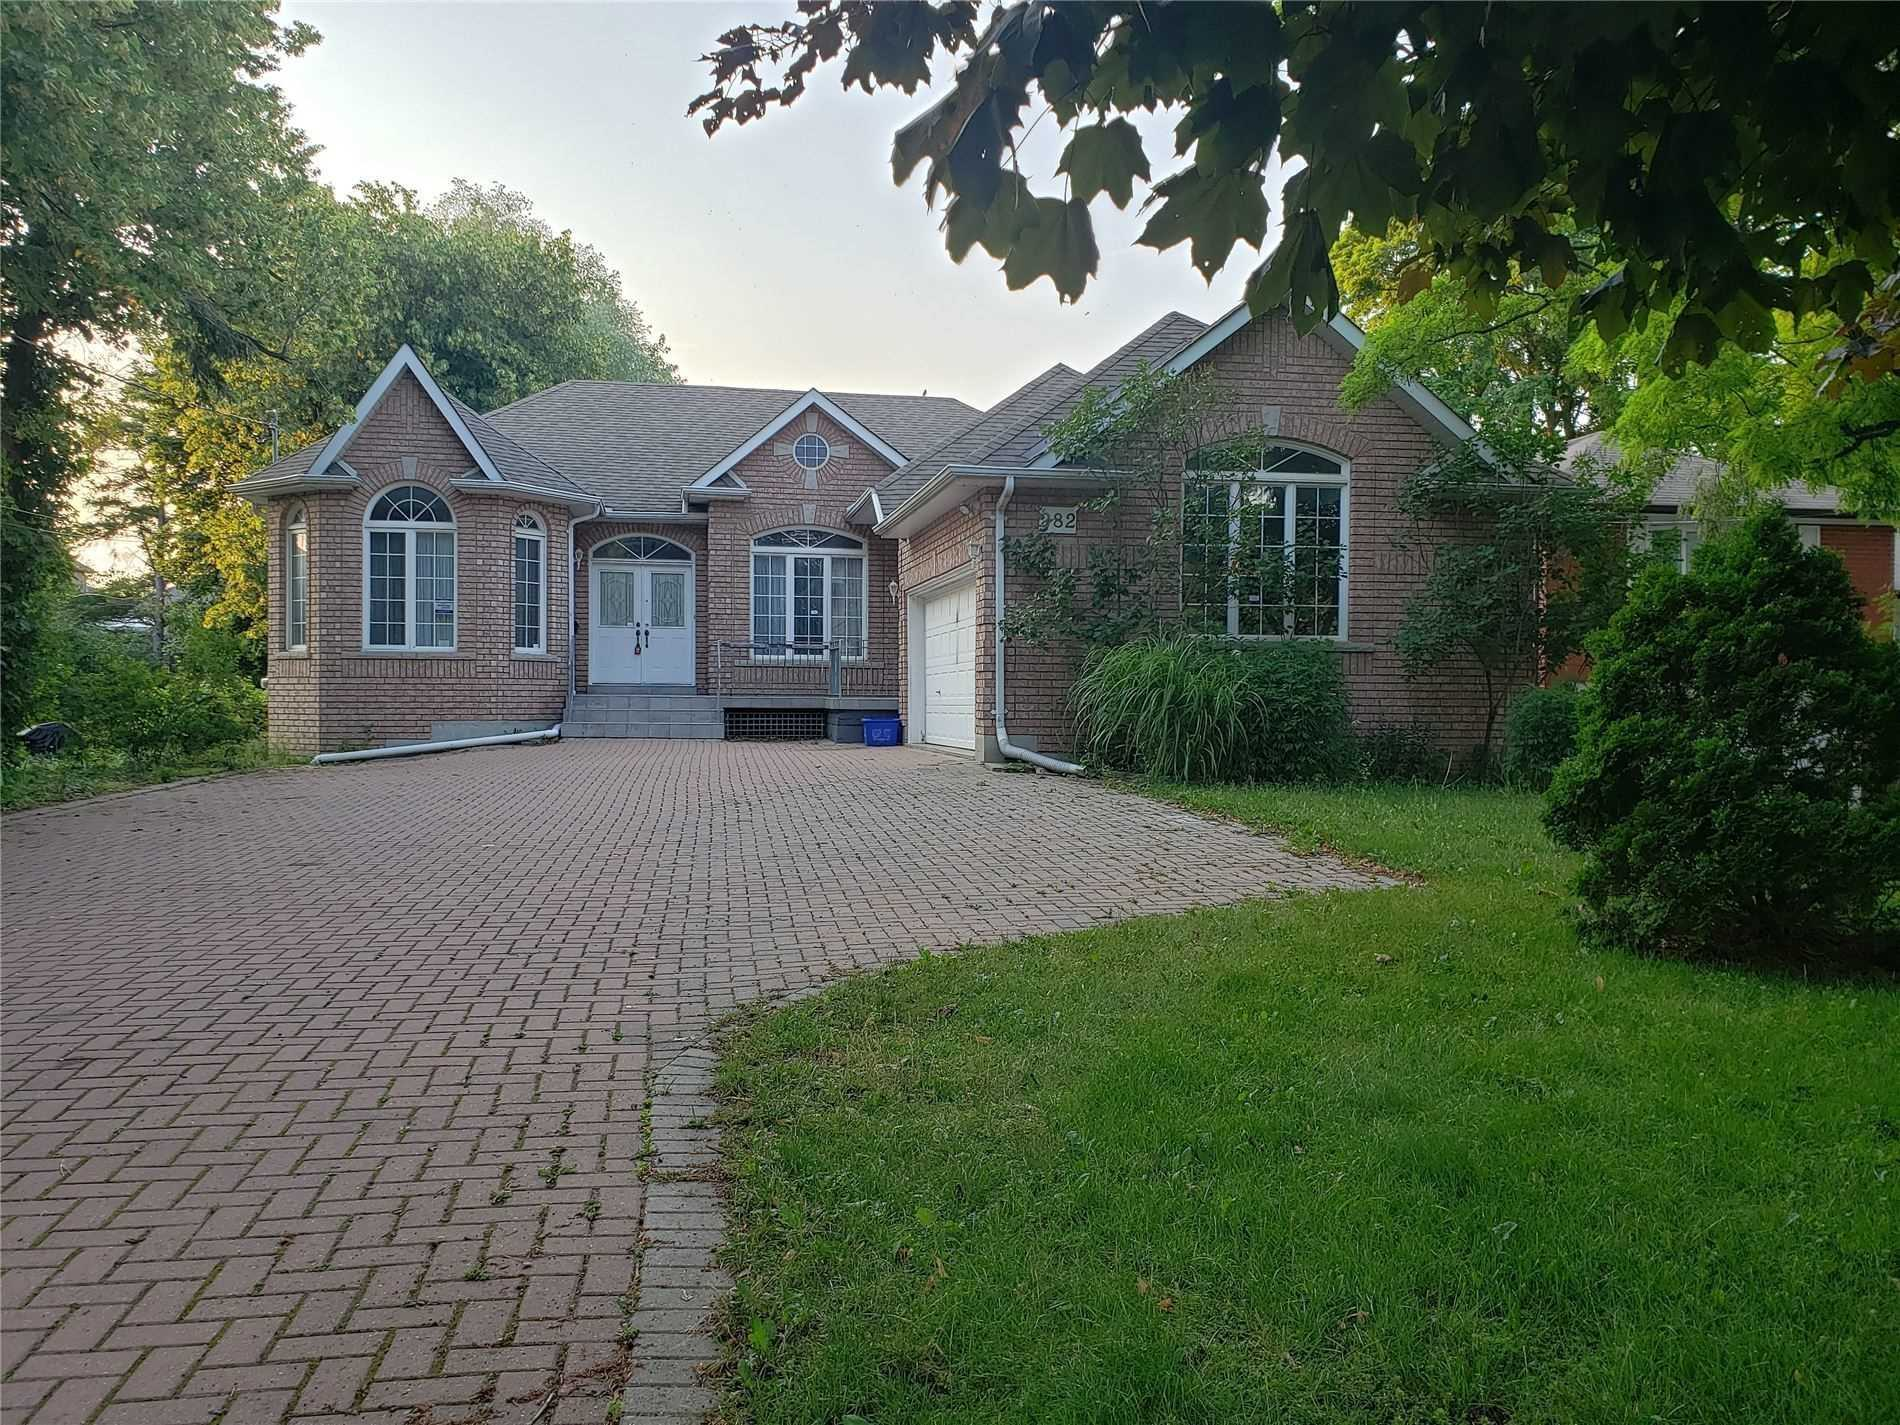 Gorgeous Spacious Detached Home In Highly Desirable Richmond Hill (Westbrook), 9' Smooth Ceilings, Close To All Amenities, Walking Distance To Yonge St. Transit, School, Libraries & Parks. A Complete, Remarkable Property. There Also Are Two Extra Room Usable As Bedroom Or Office. The Mail Floor Is Vacant And The Basement Is Tenanted.